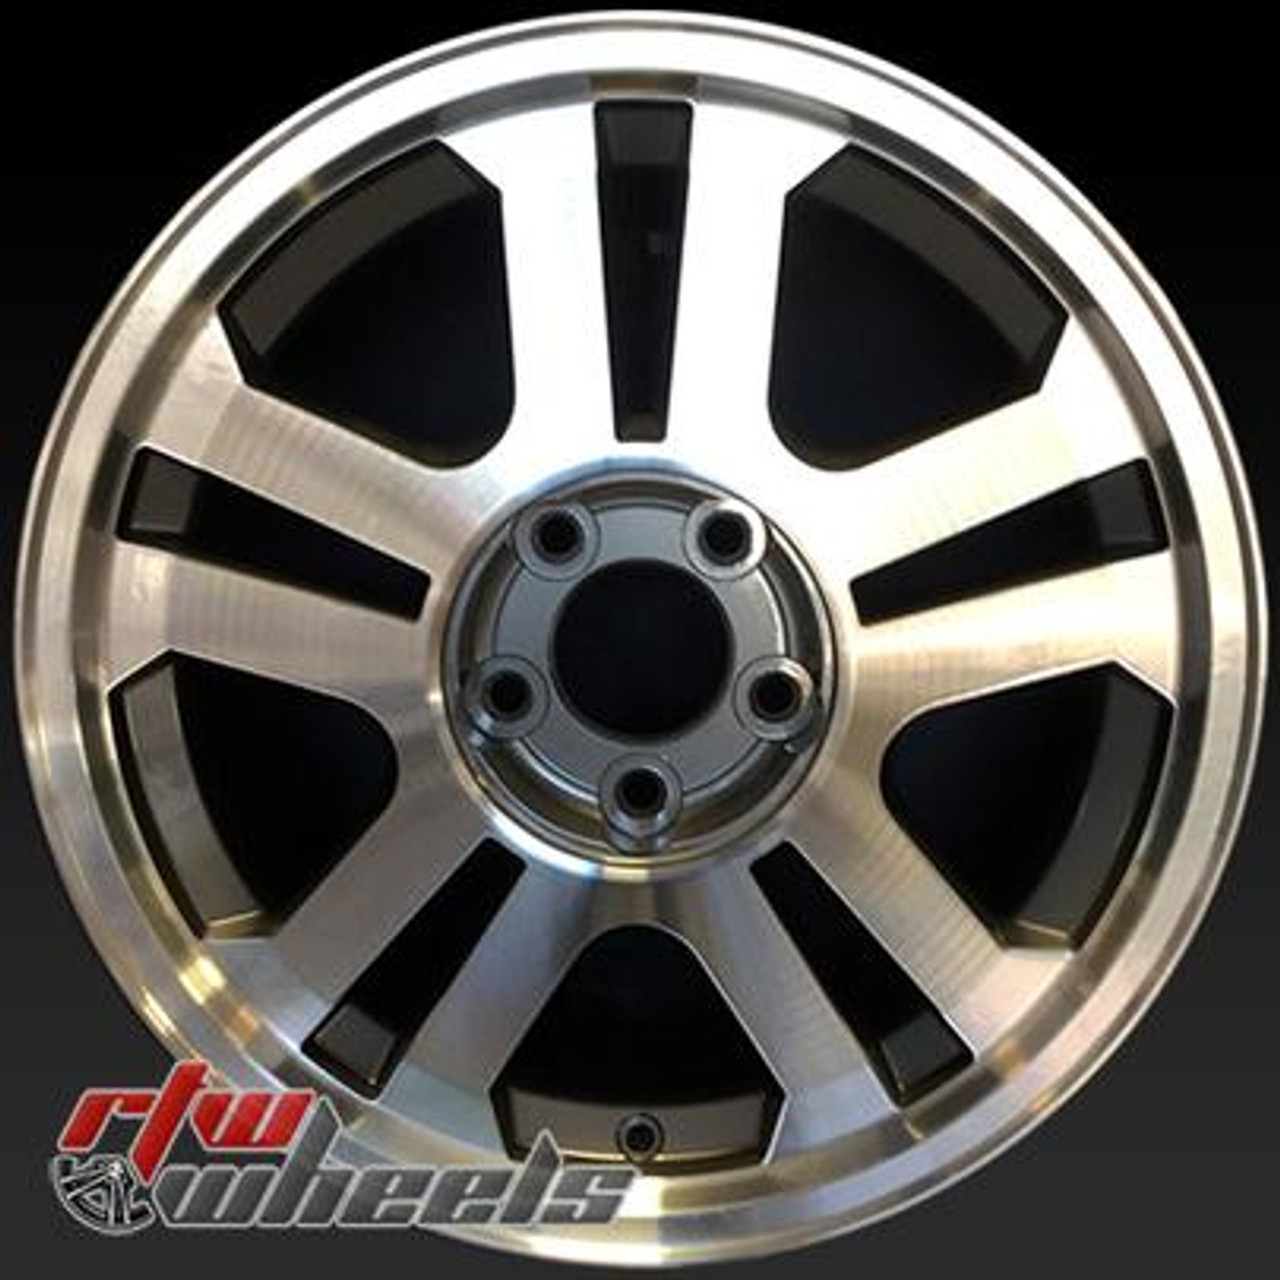 2005 Mustang Wheels >> Ford Mustang Wheels For Sale 2005 17 Machined Rims 3590